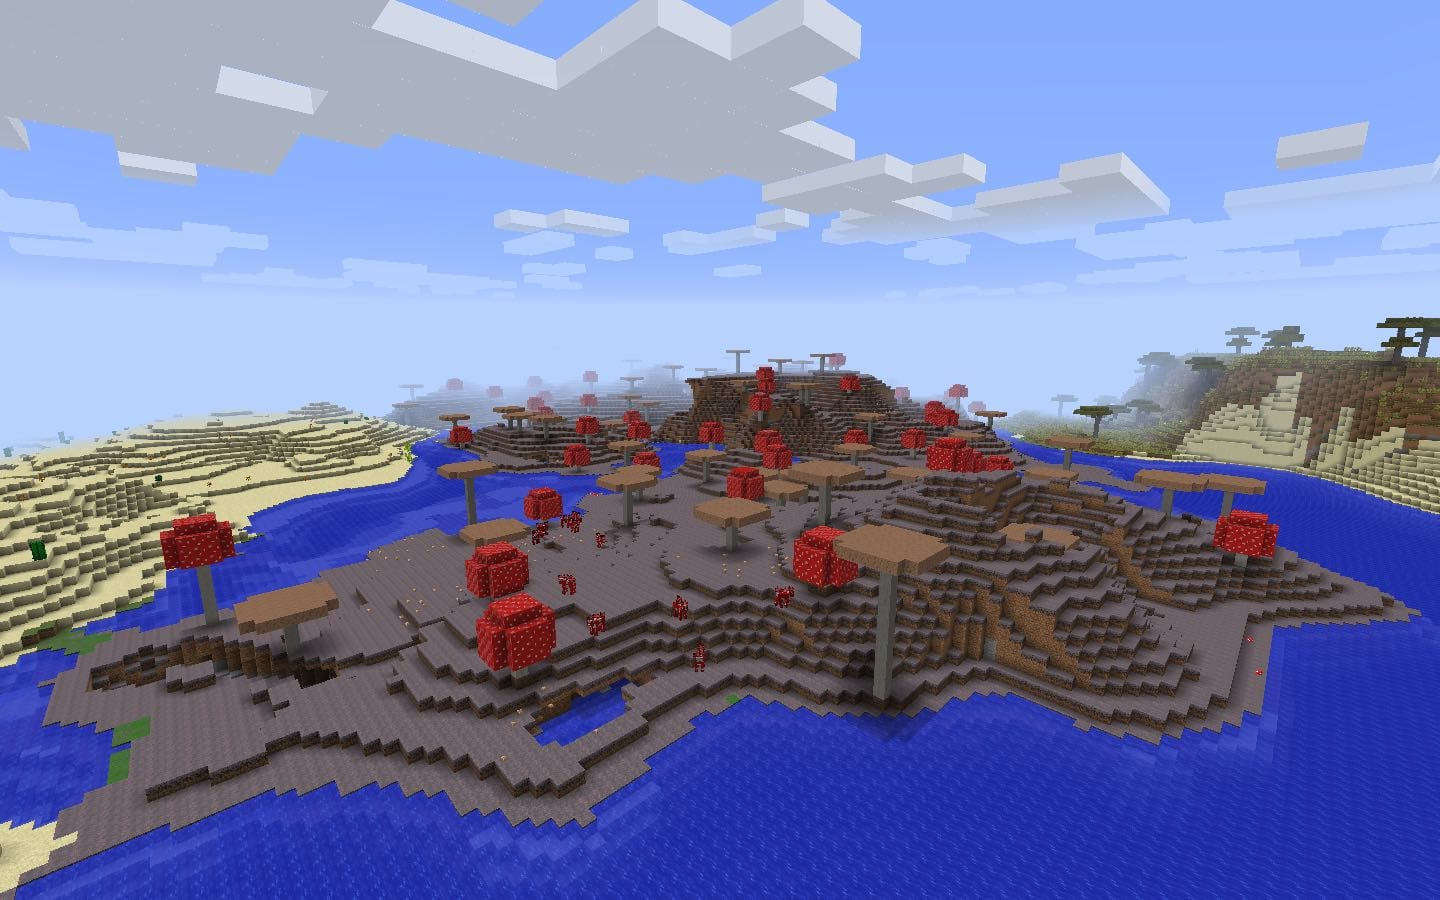 Minecraft mushroom island seeds minecraft seed hq spawn at the edge of a mushroom island biome in this minecraft seed for pc and mac the mushroom biome is loaded with mooshrooms and bound to other biomes gumiabroncs Images